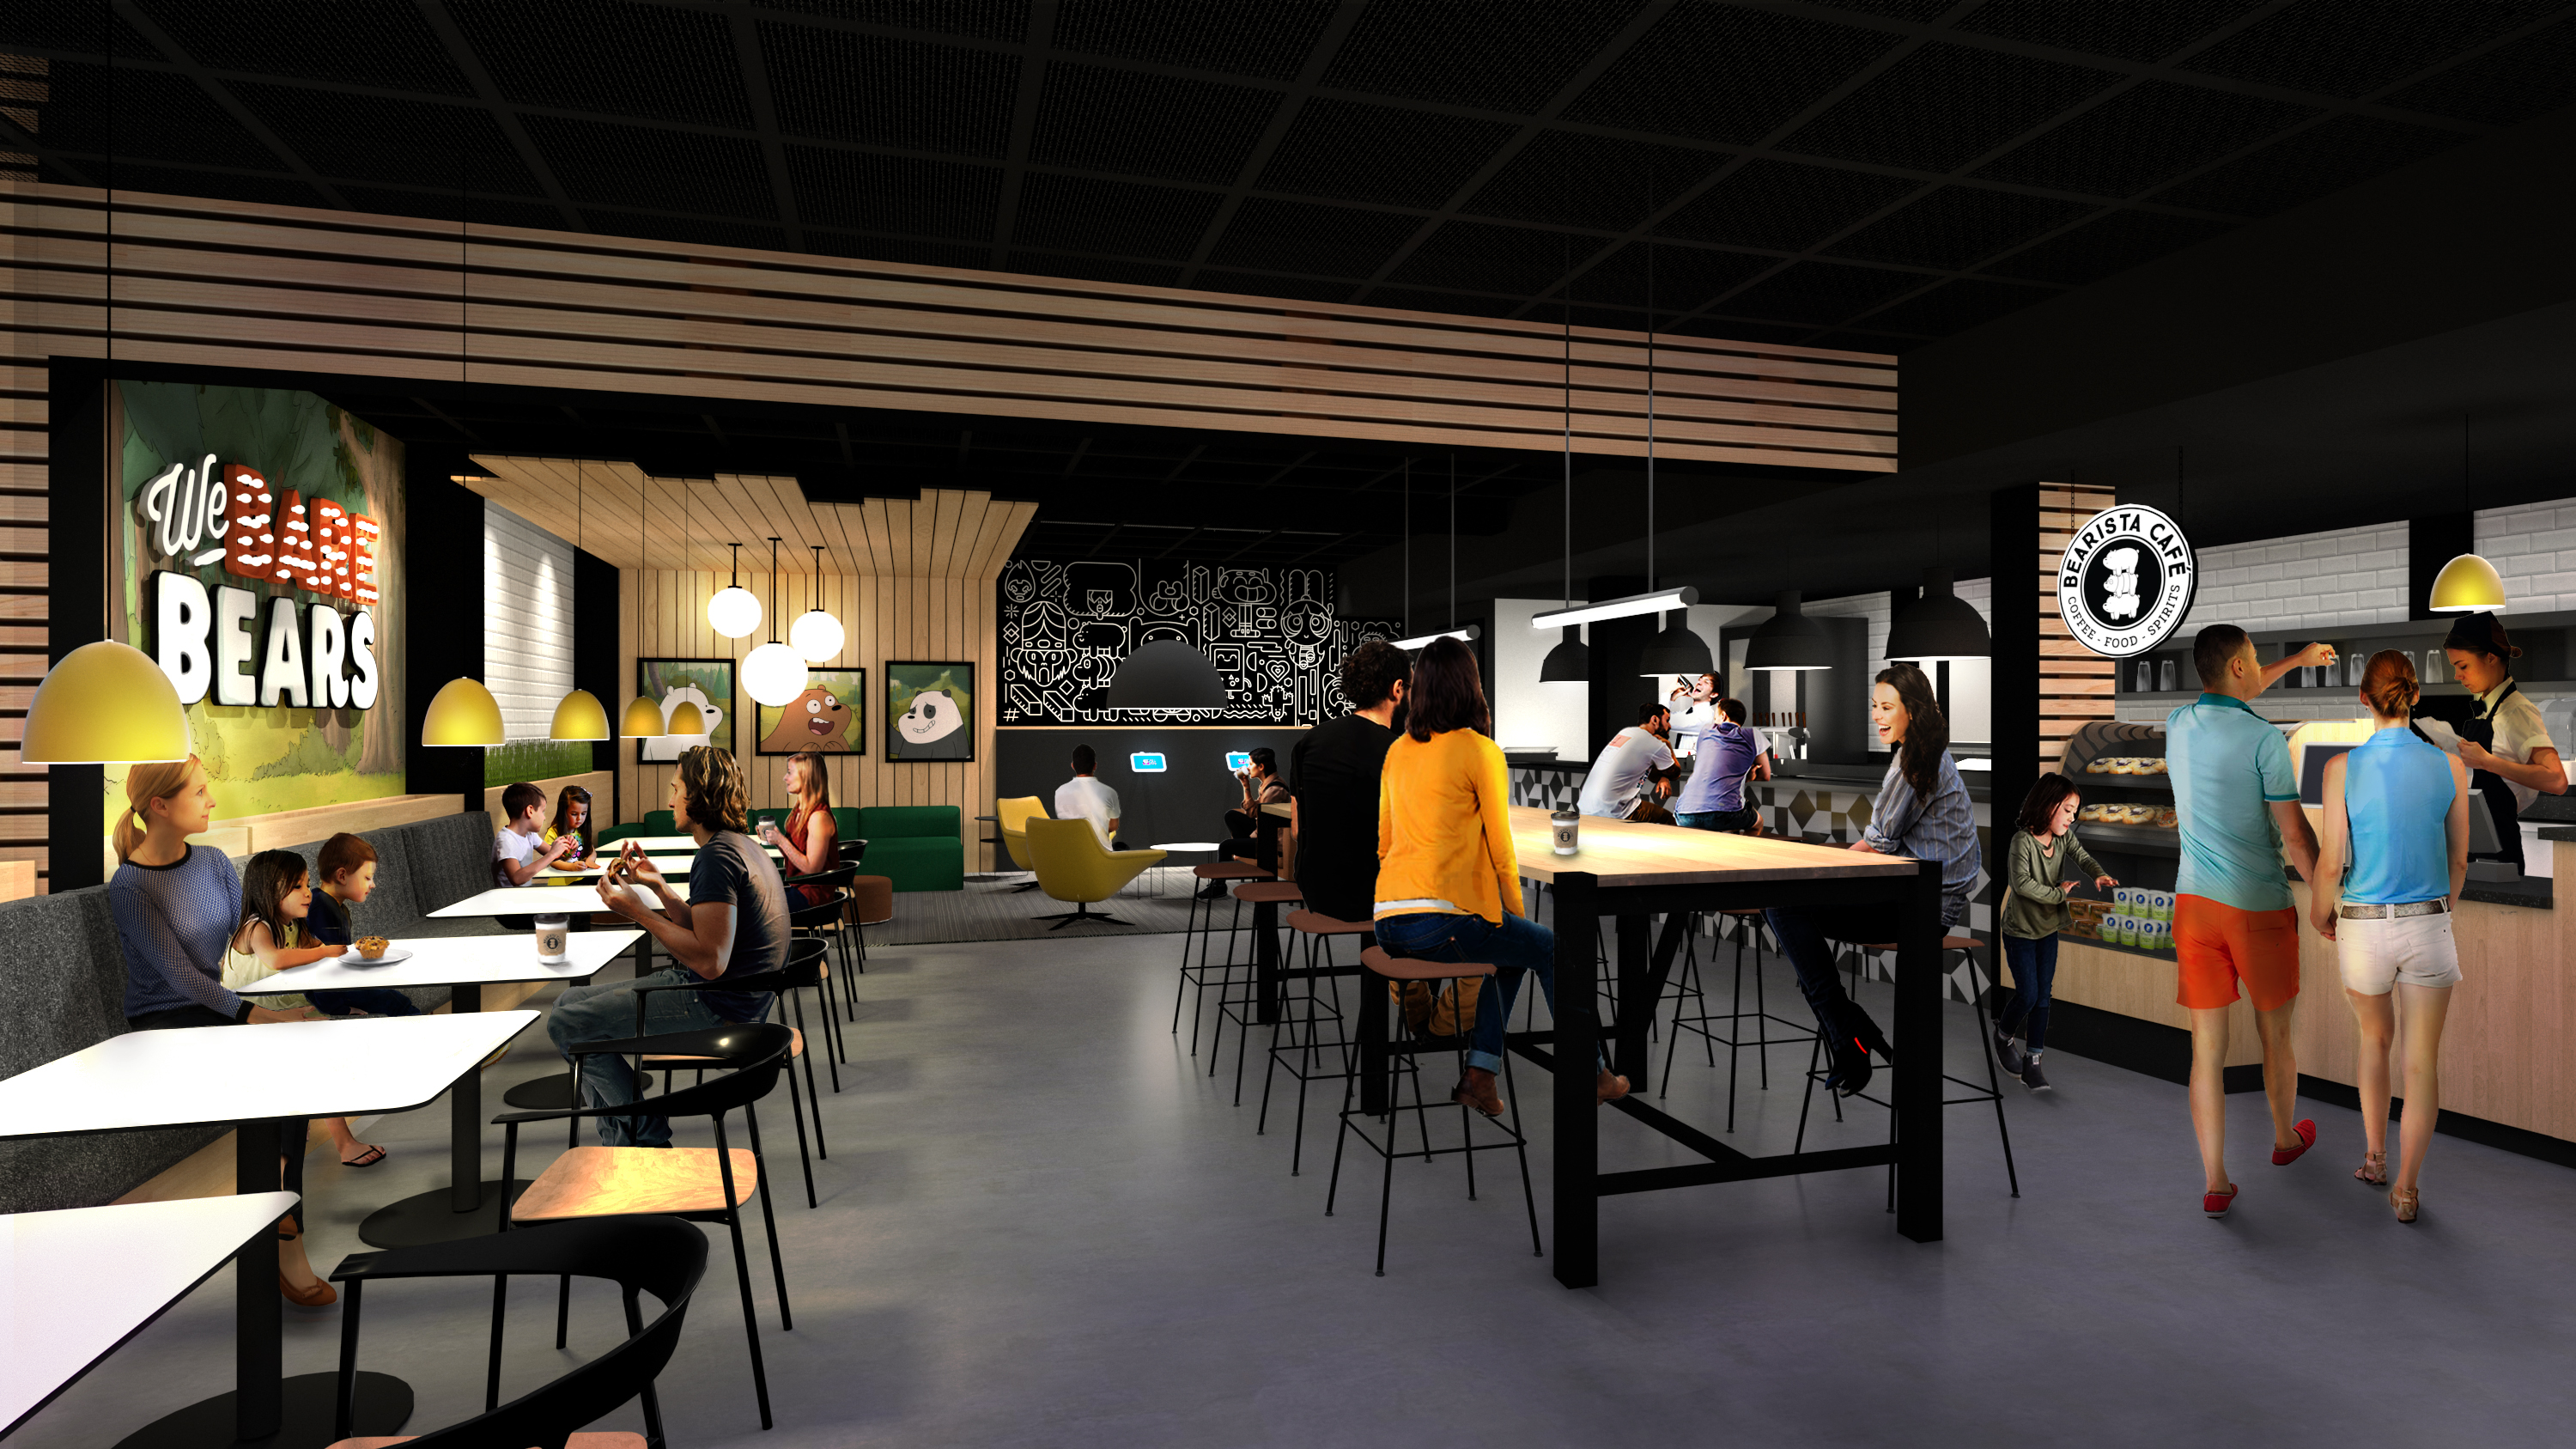 Rendering of the Bearista Cafe at the Cartoon Network Hotel